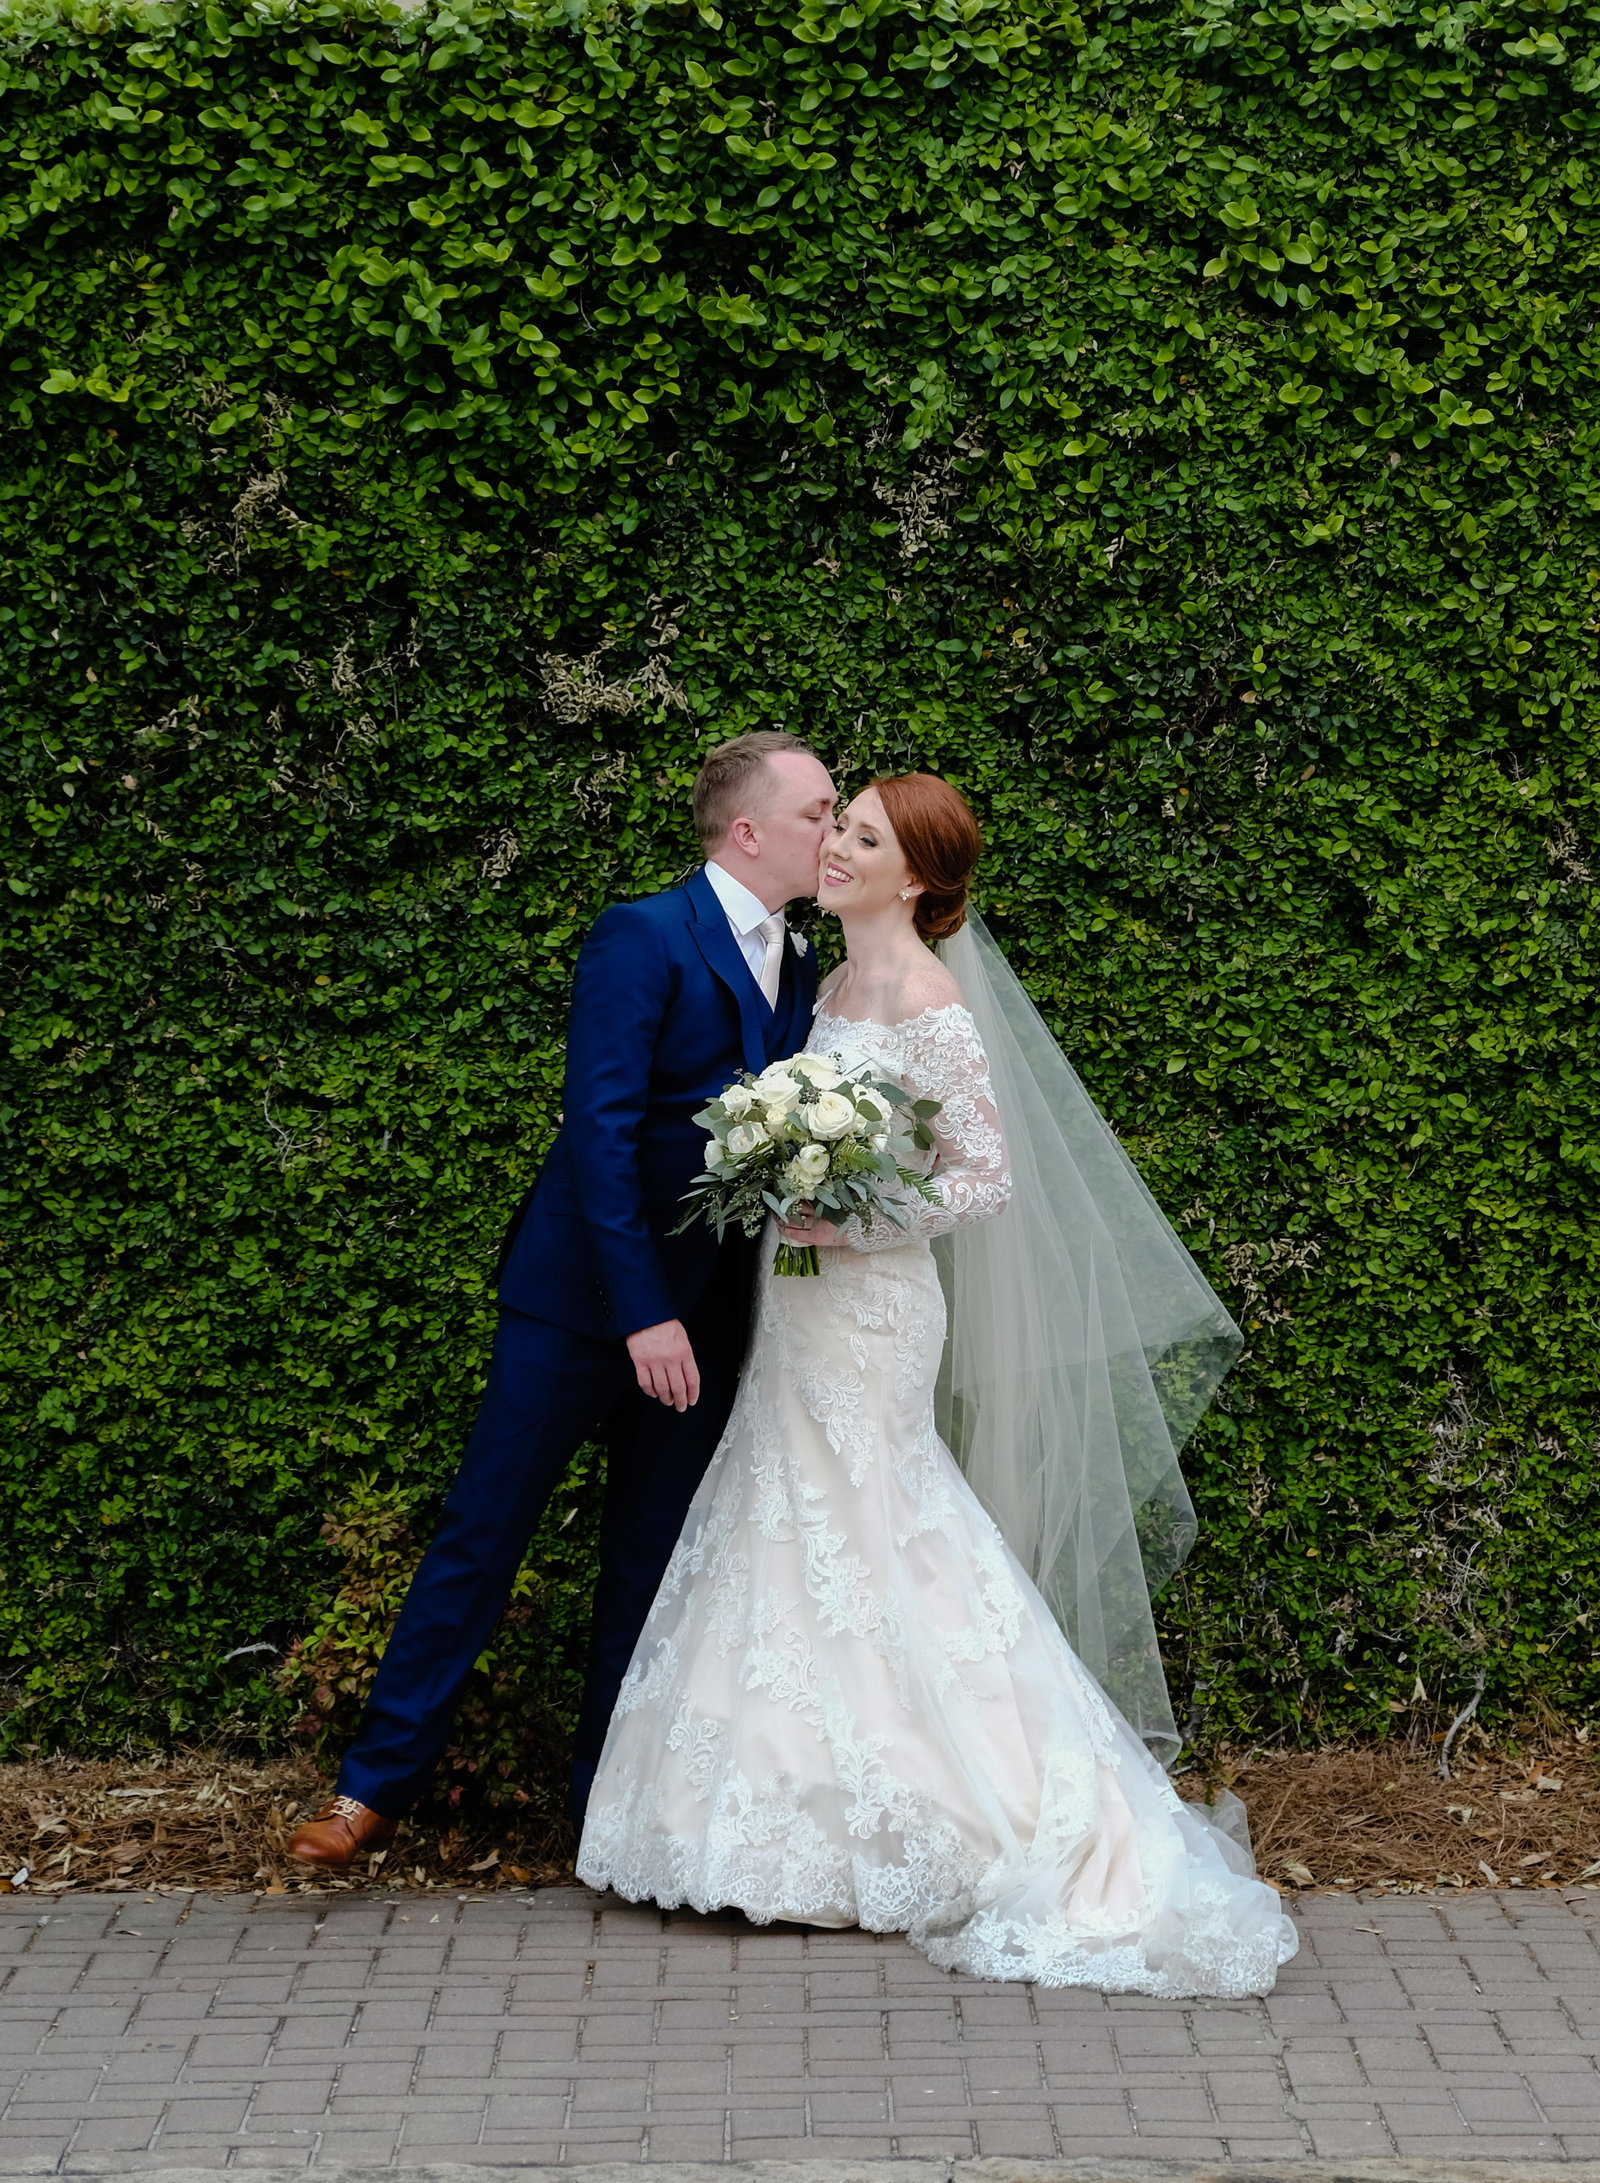 Kathleen + Thomas, Savannah Wedding, Bobbi Brinkman Photography